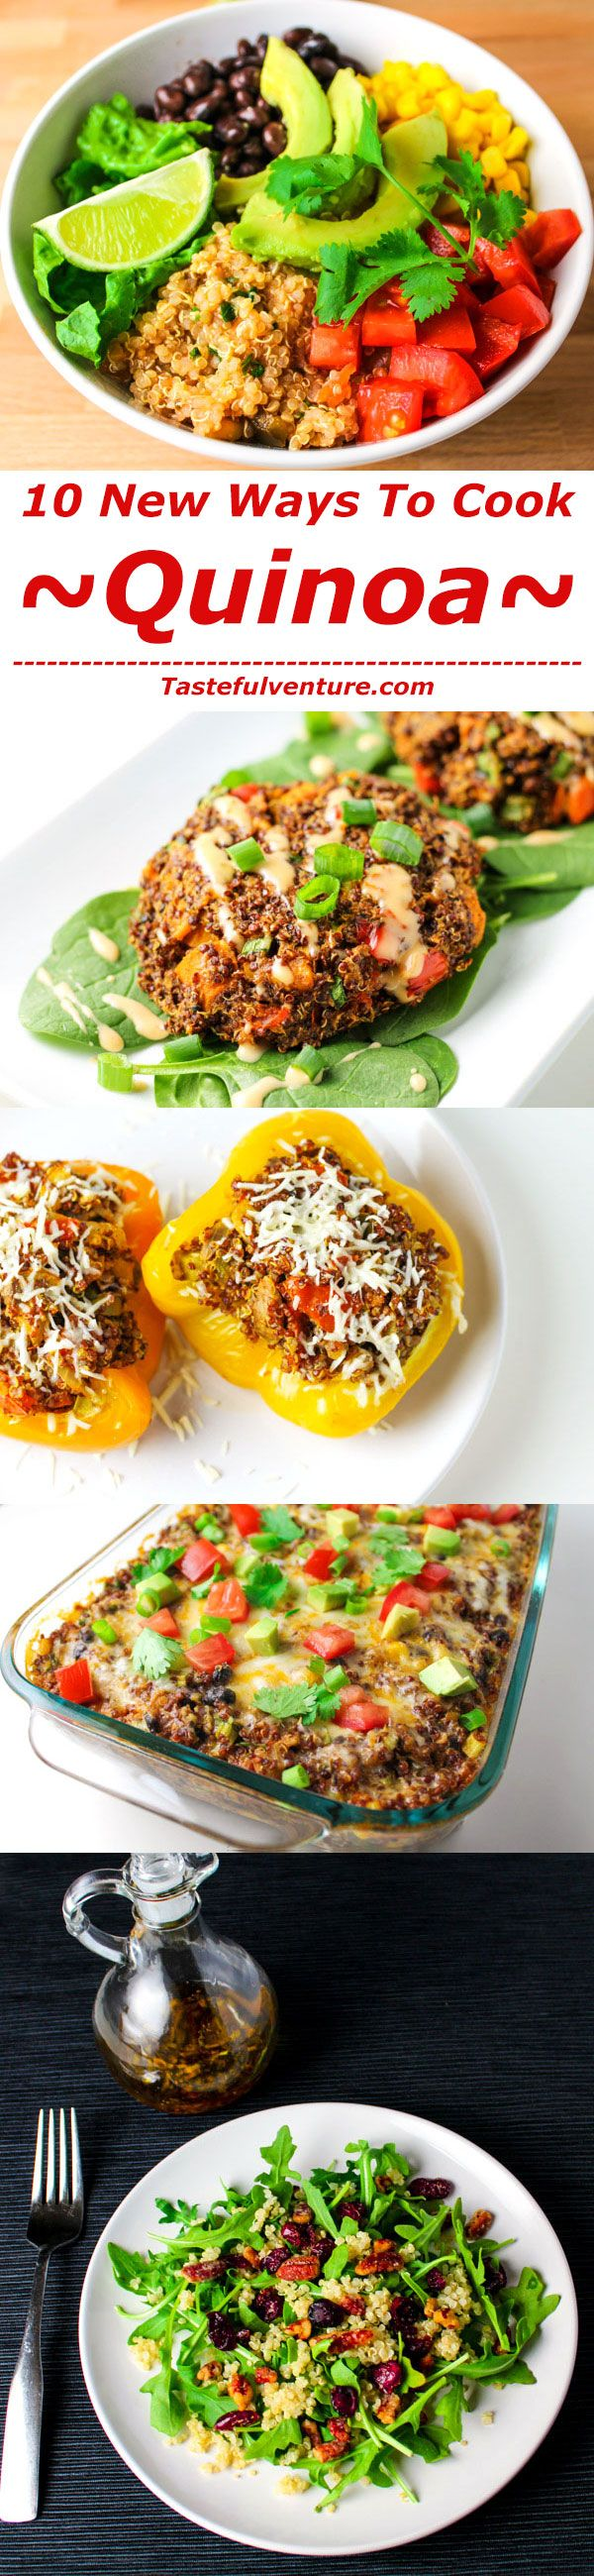 10 New Ways To Make Quinoa! These recipes are all healthy, gluten free, and delicious! | http://Tastefulventure.com